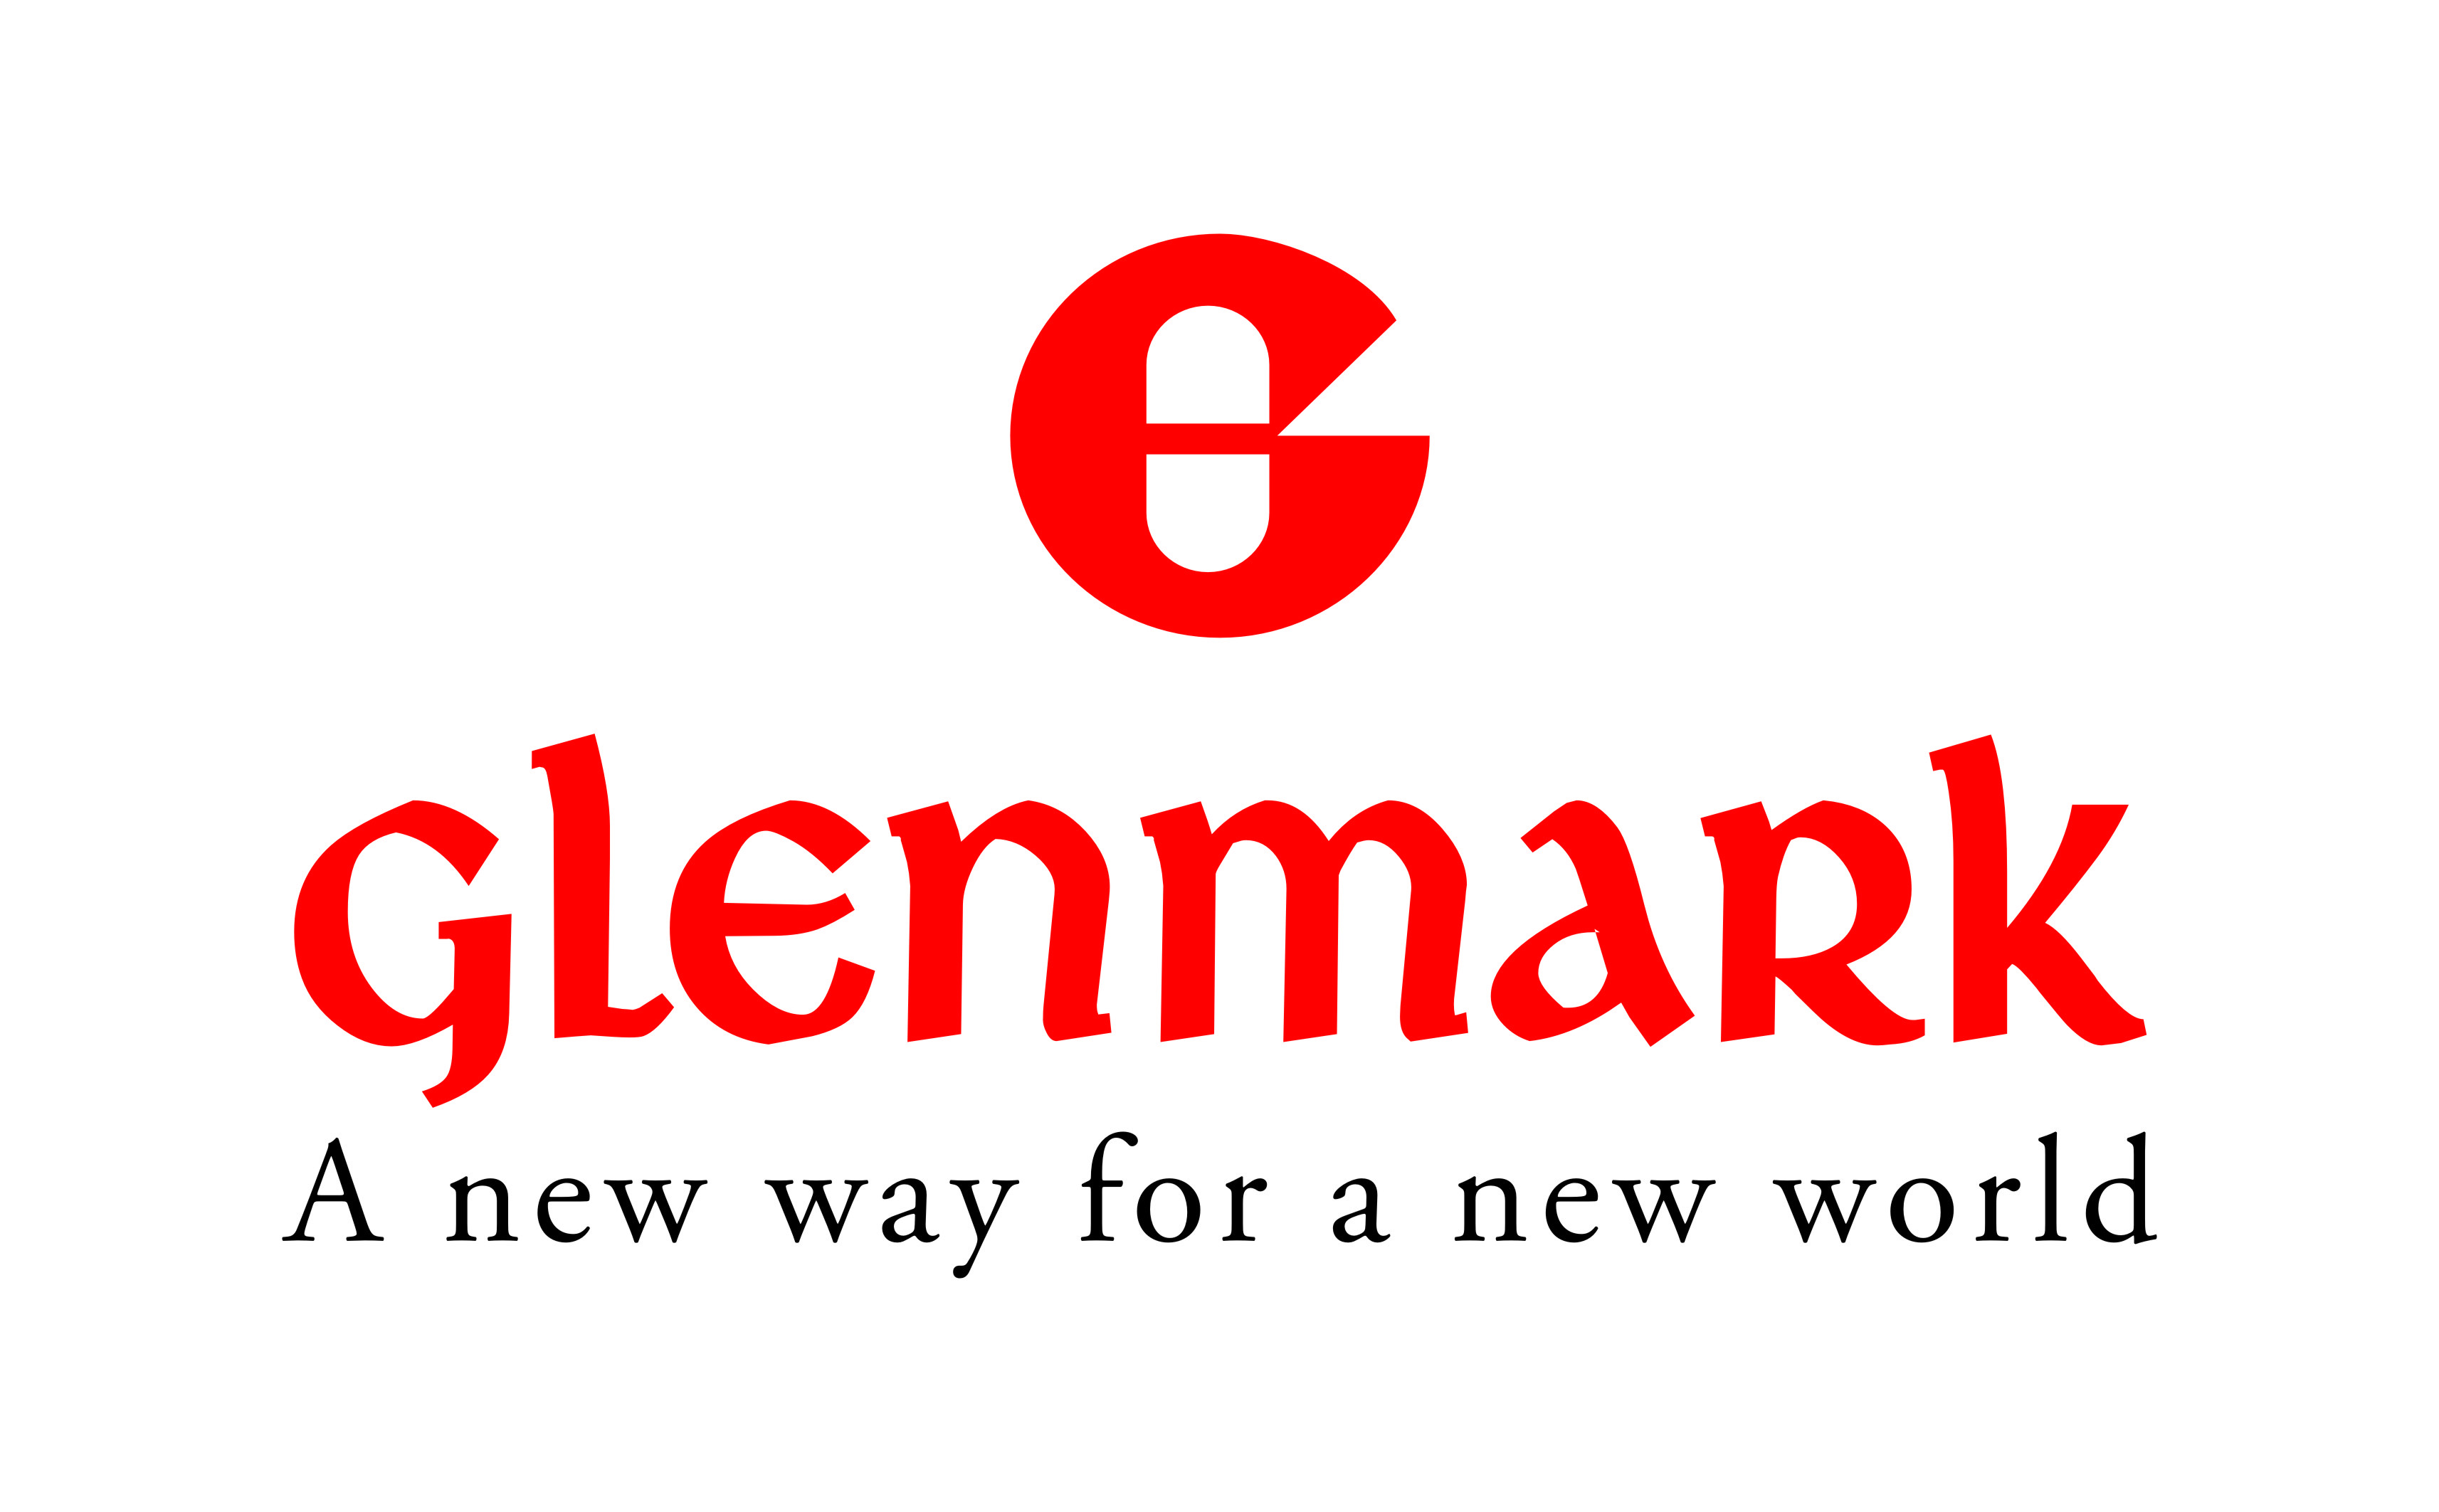 glenmark logo with tagline